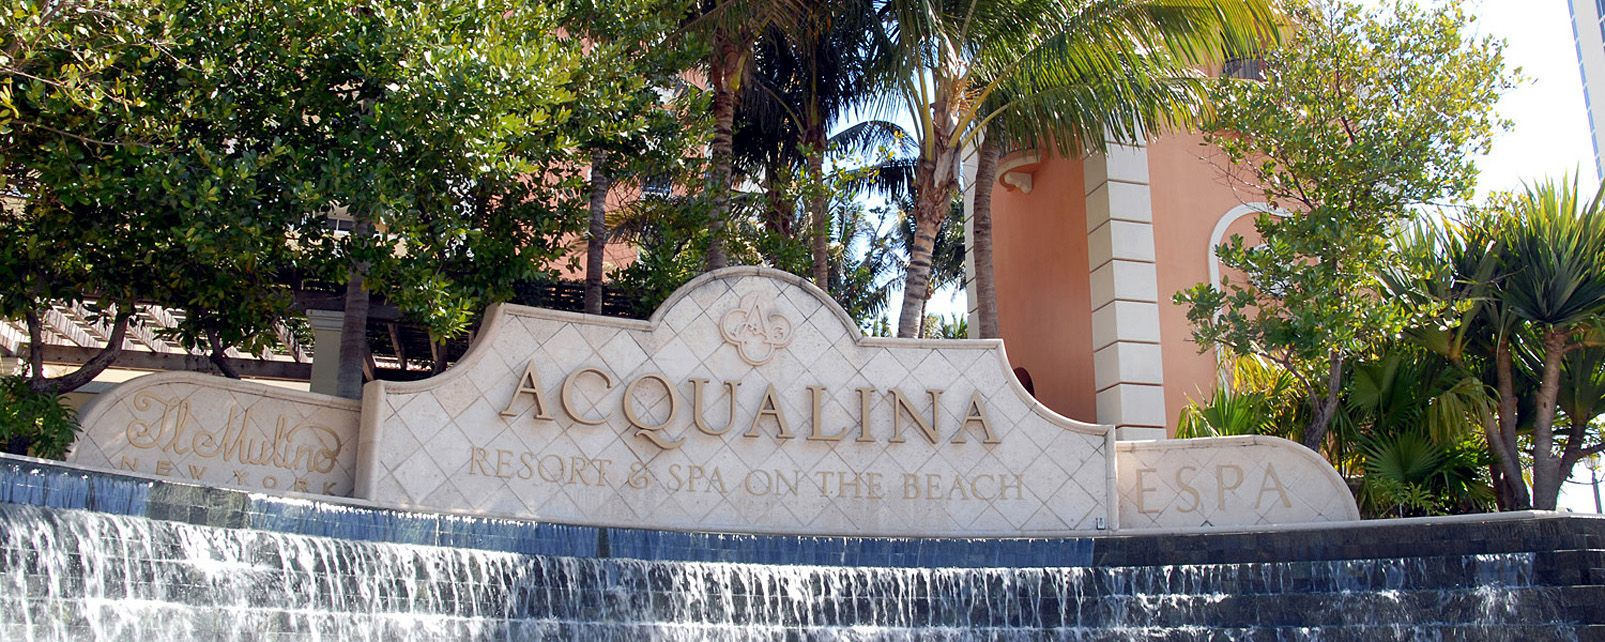 Hotel Acqualina Resort and Spa